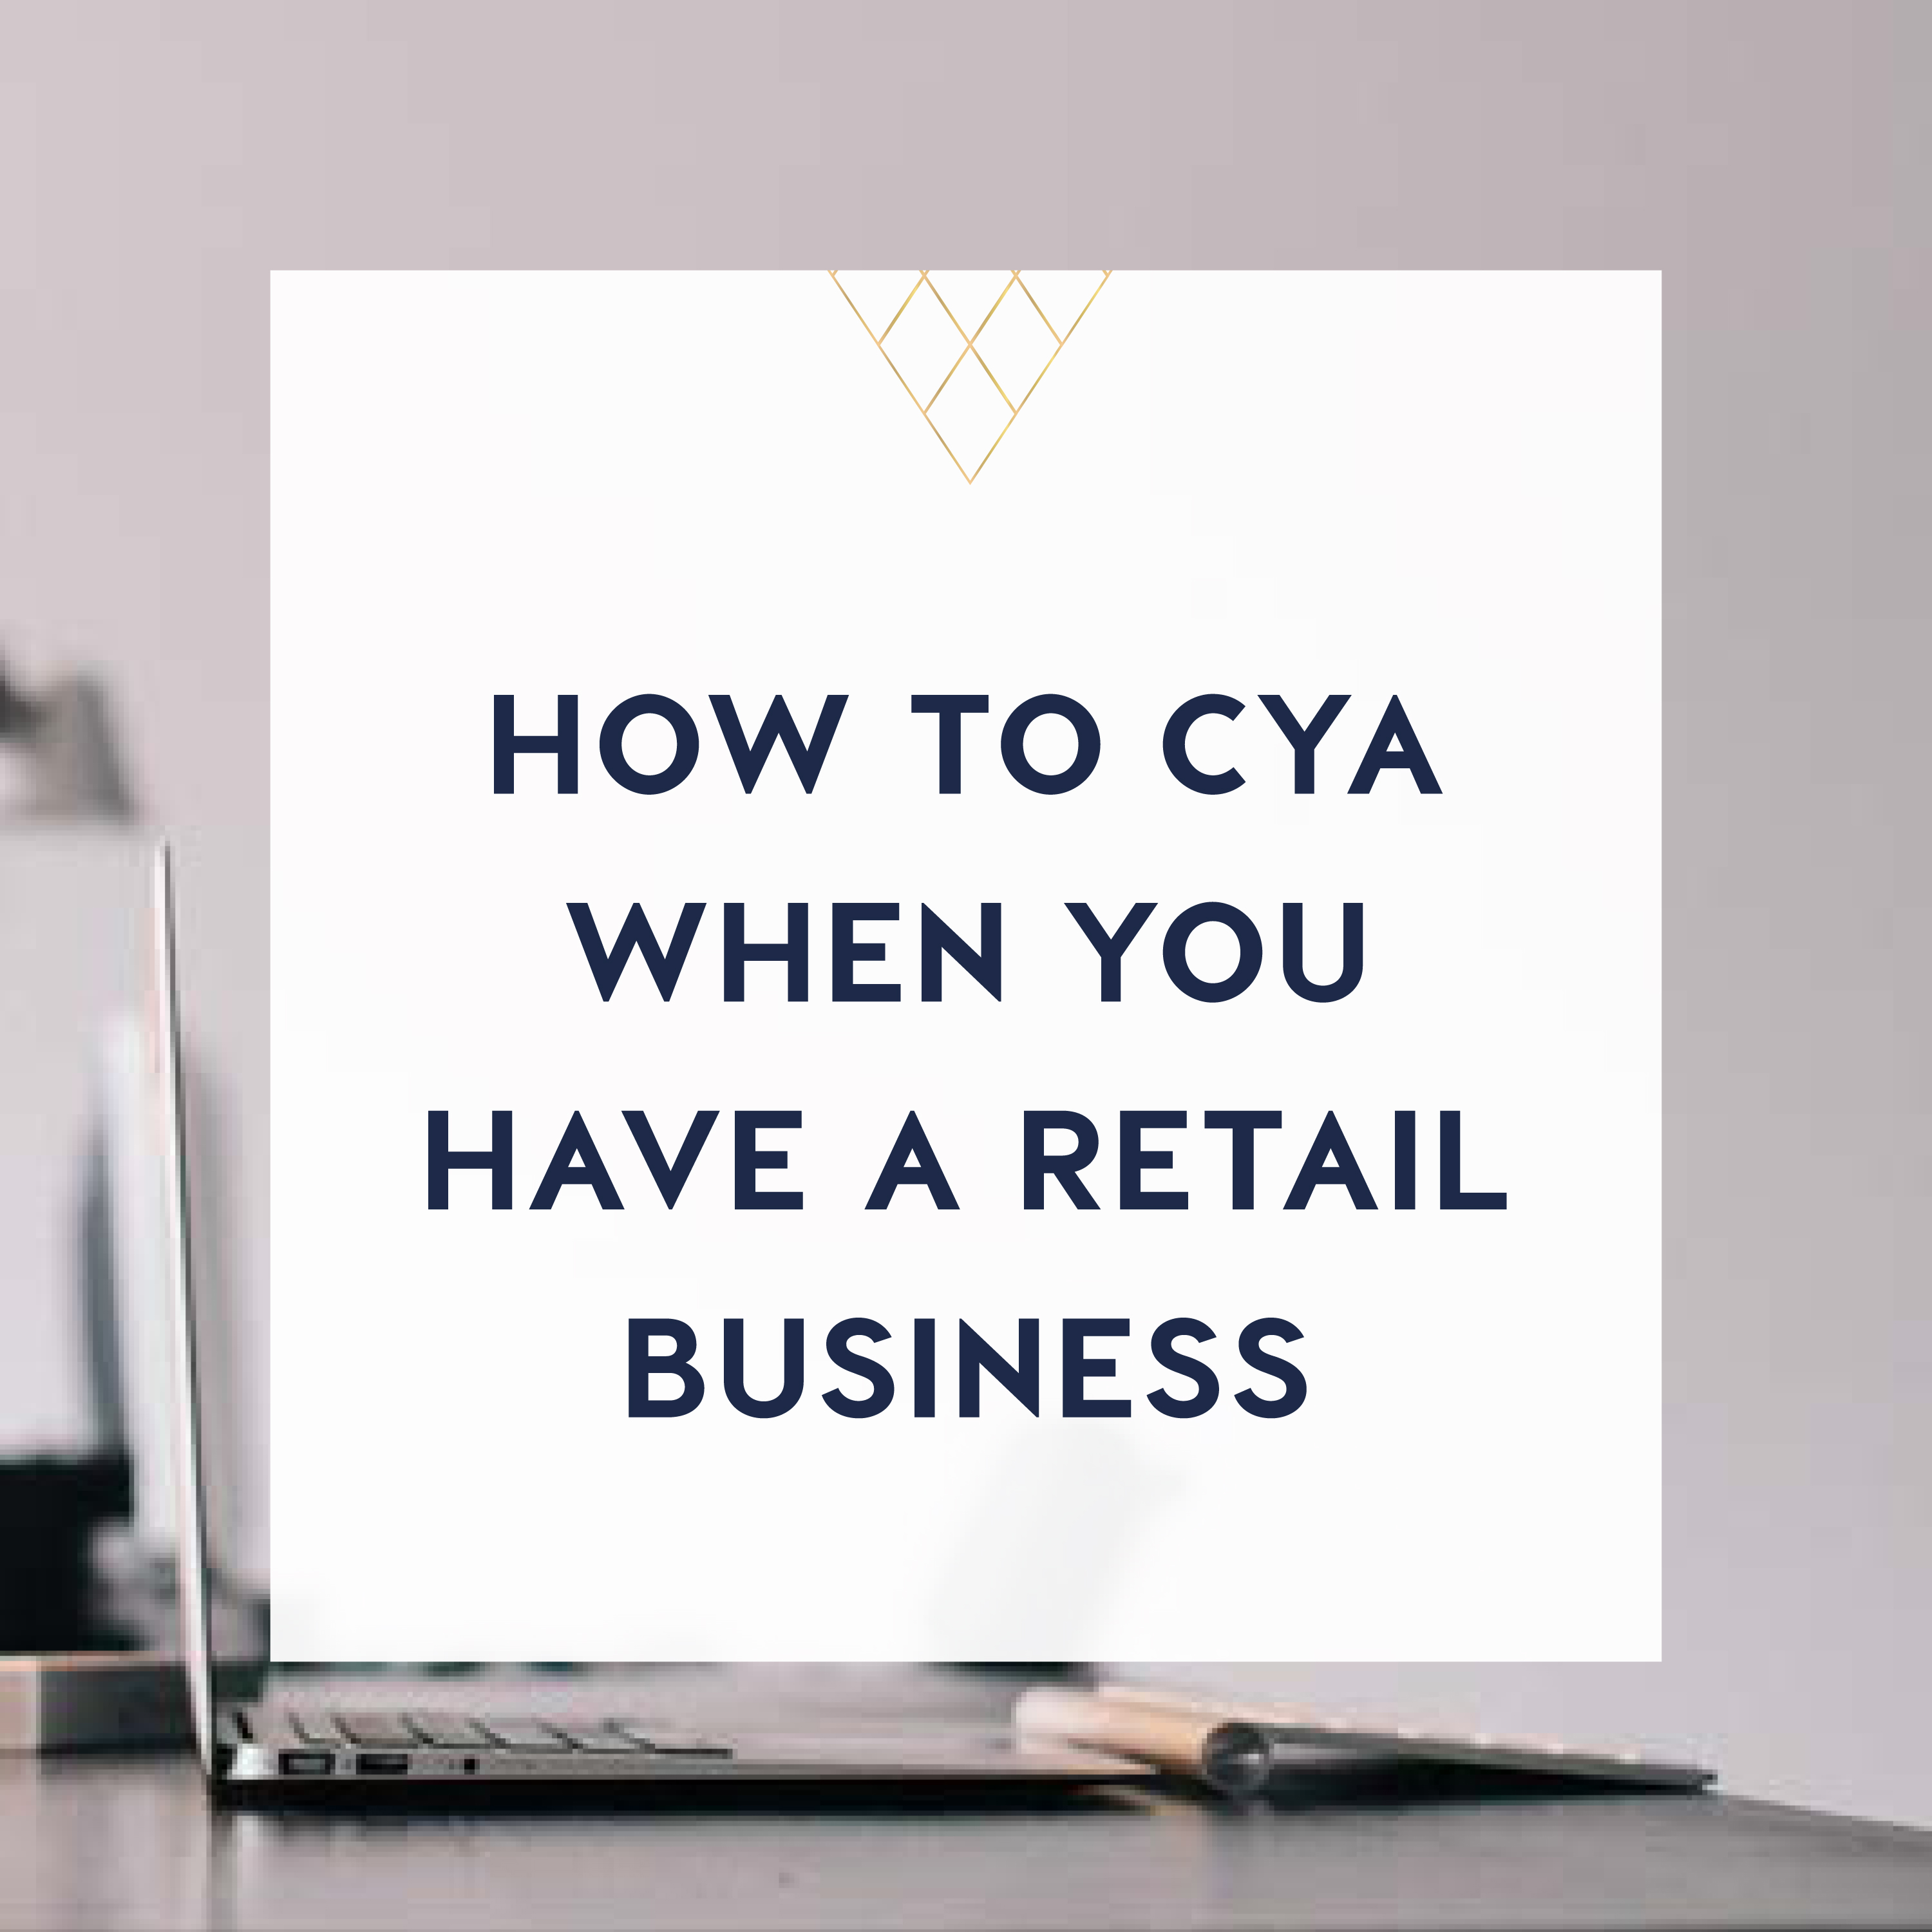 how to cya when you have a retail business